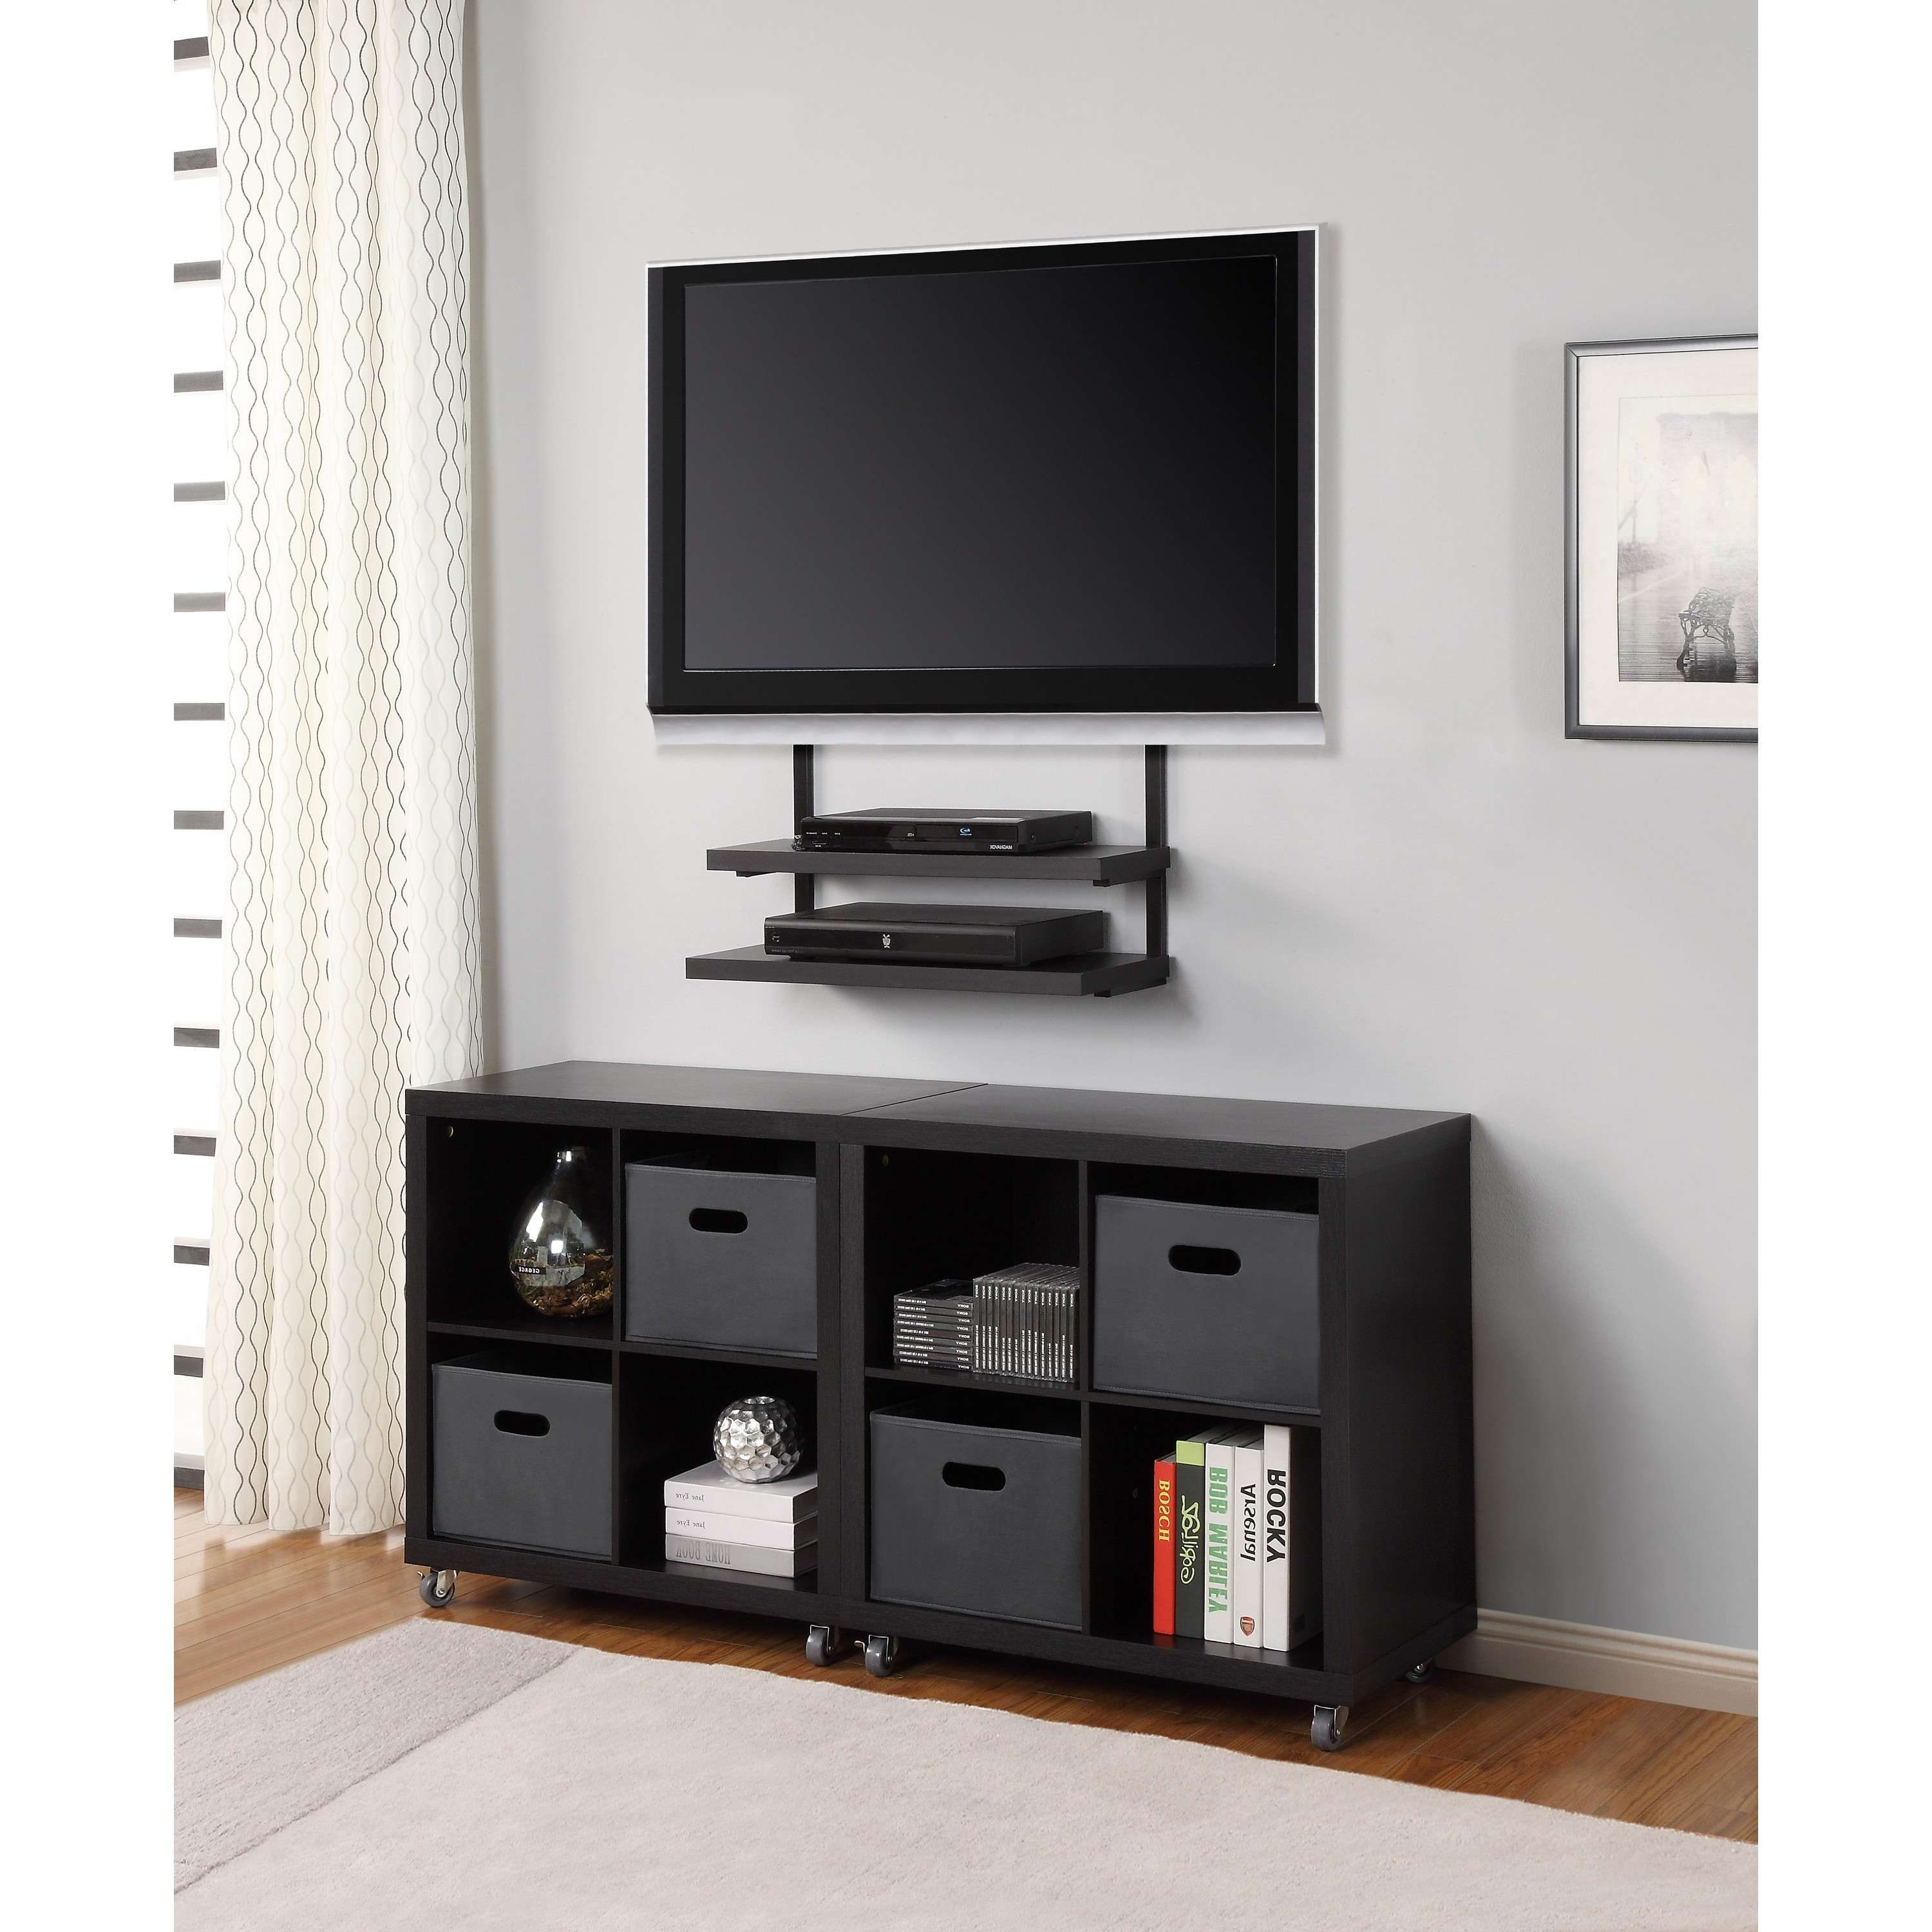 Unique Tv Stand Ideas Small Corner Awesome Images About Trends And Regarding Unique Tv Stands (View 13 of 15)